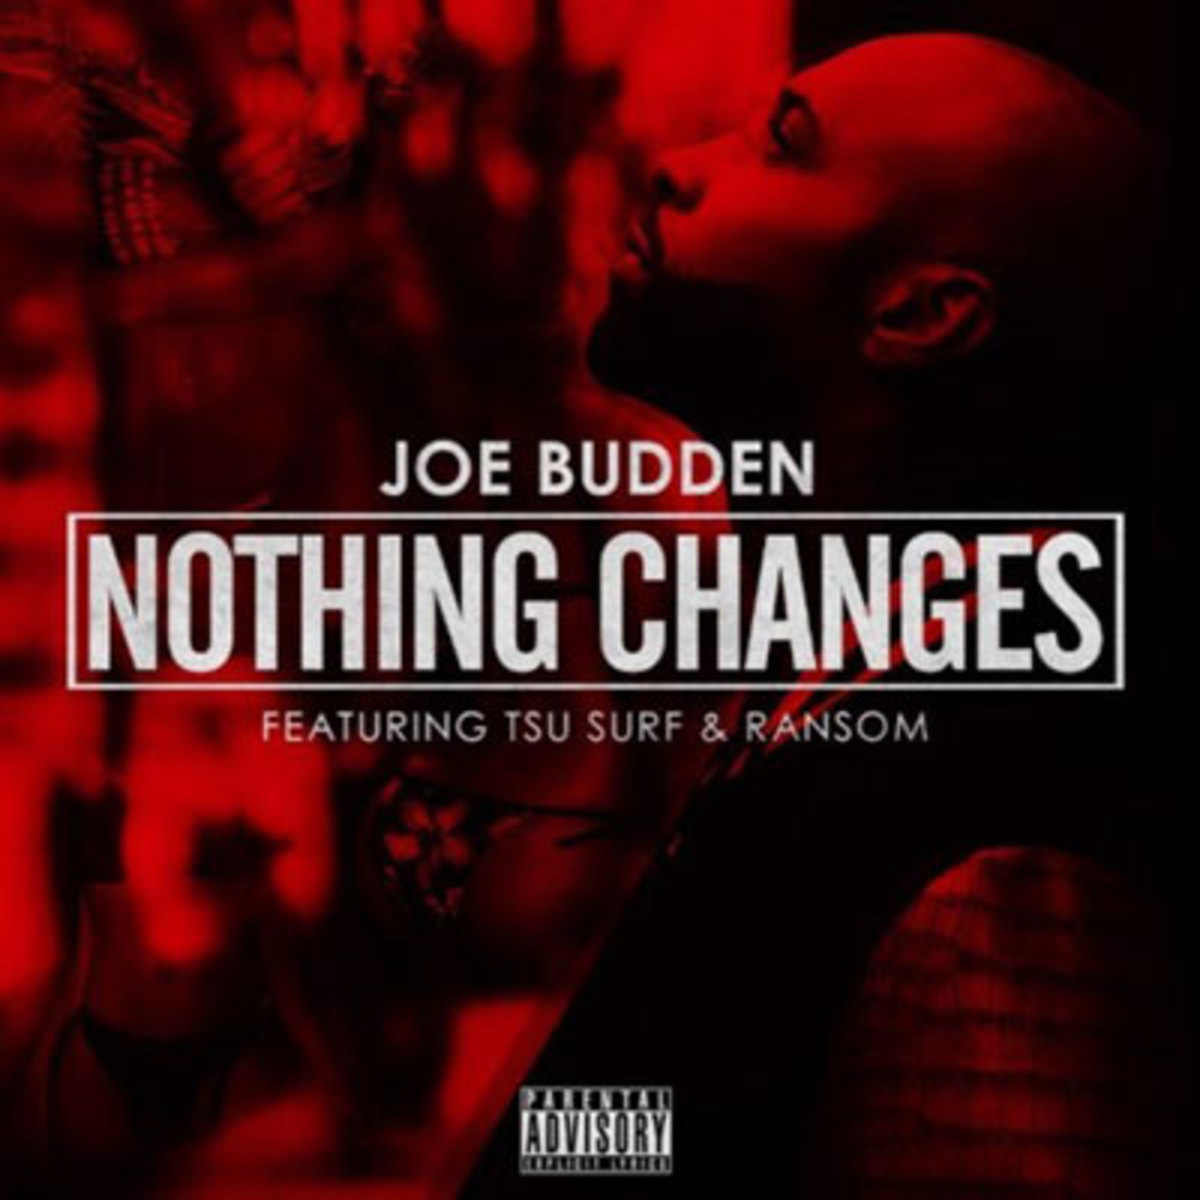 joebudden-nothingchanges.jpg